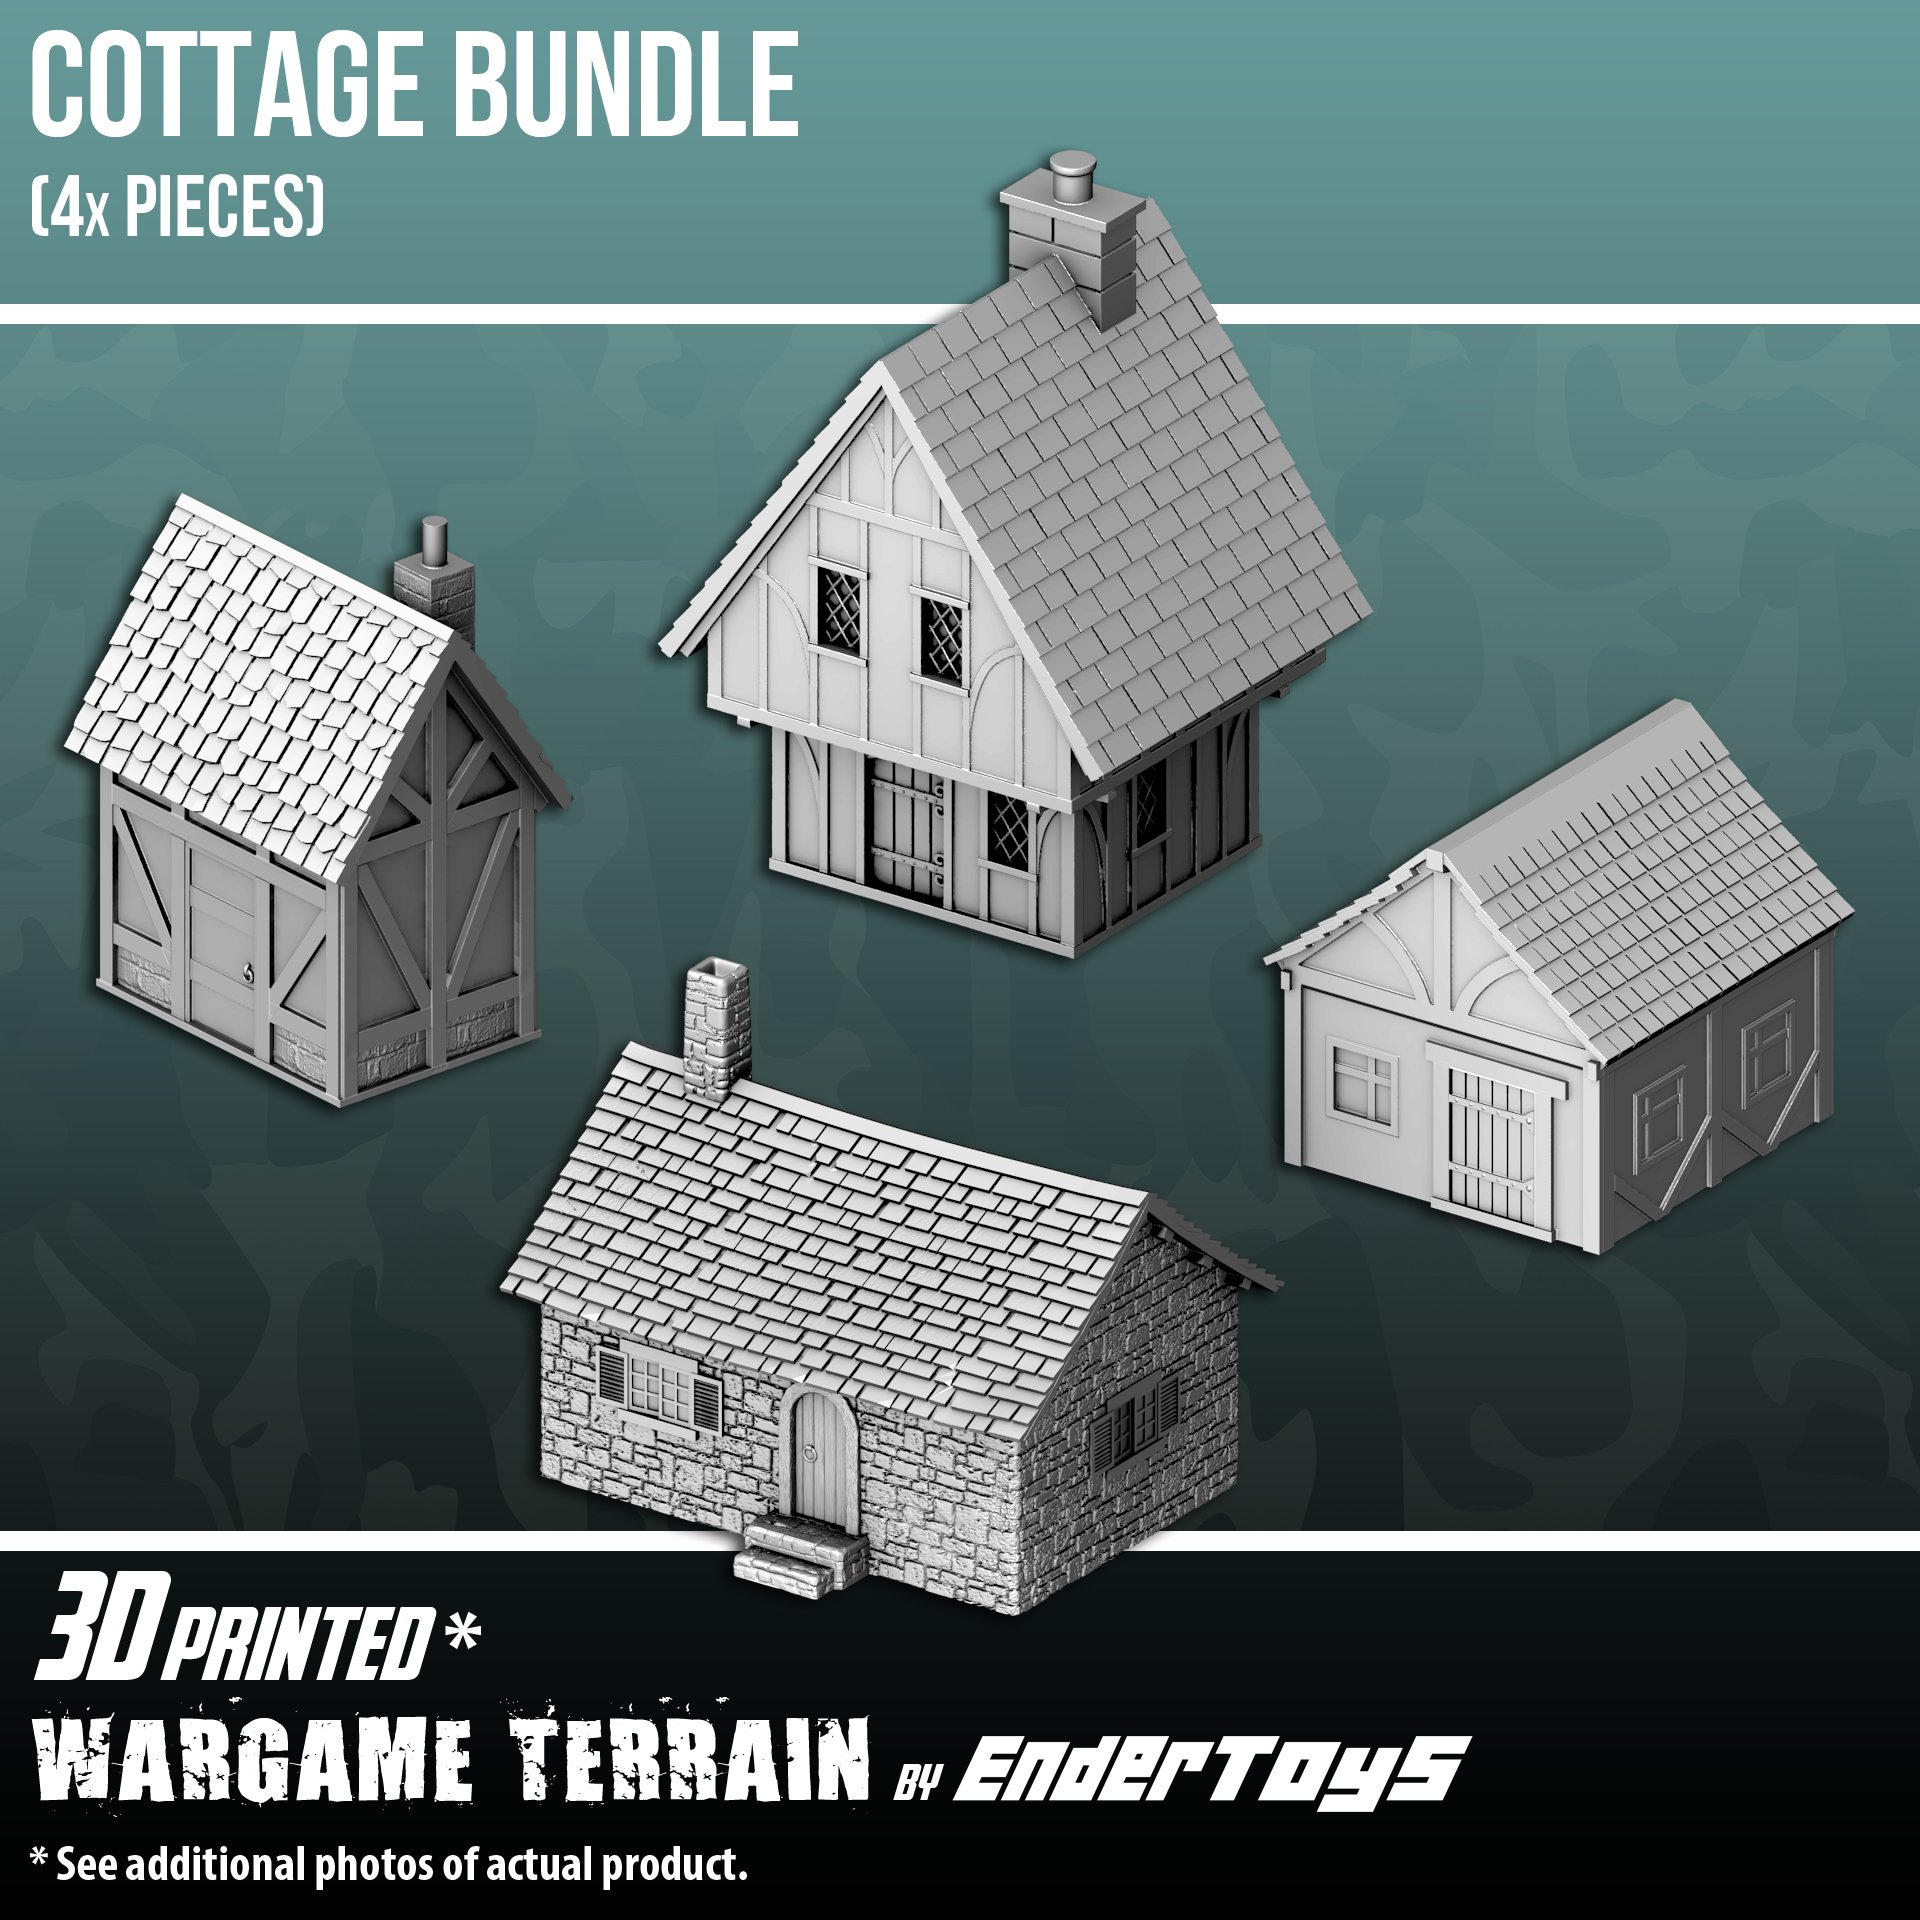 Cottage Bundle, Terrain Scenery for Tabletop 28mm Miniatures ...